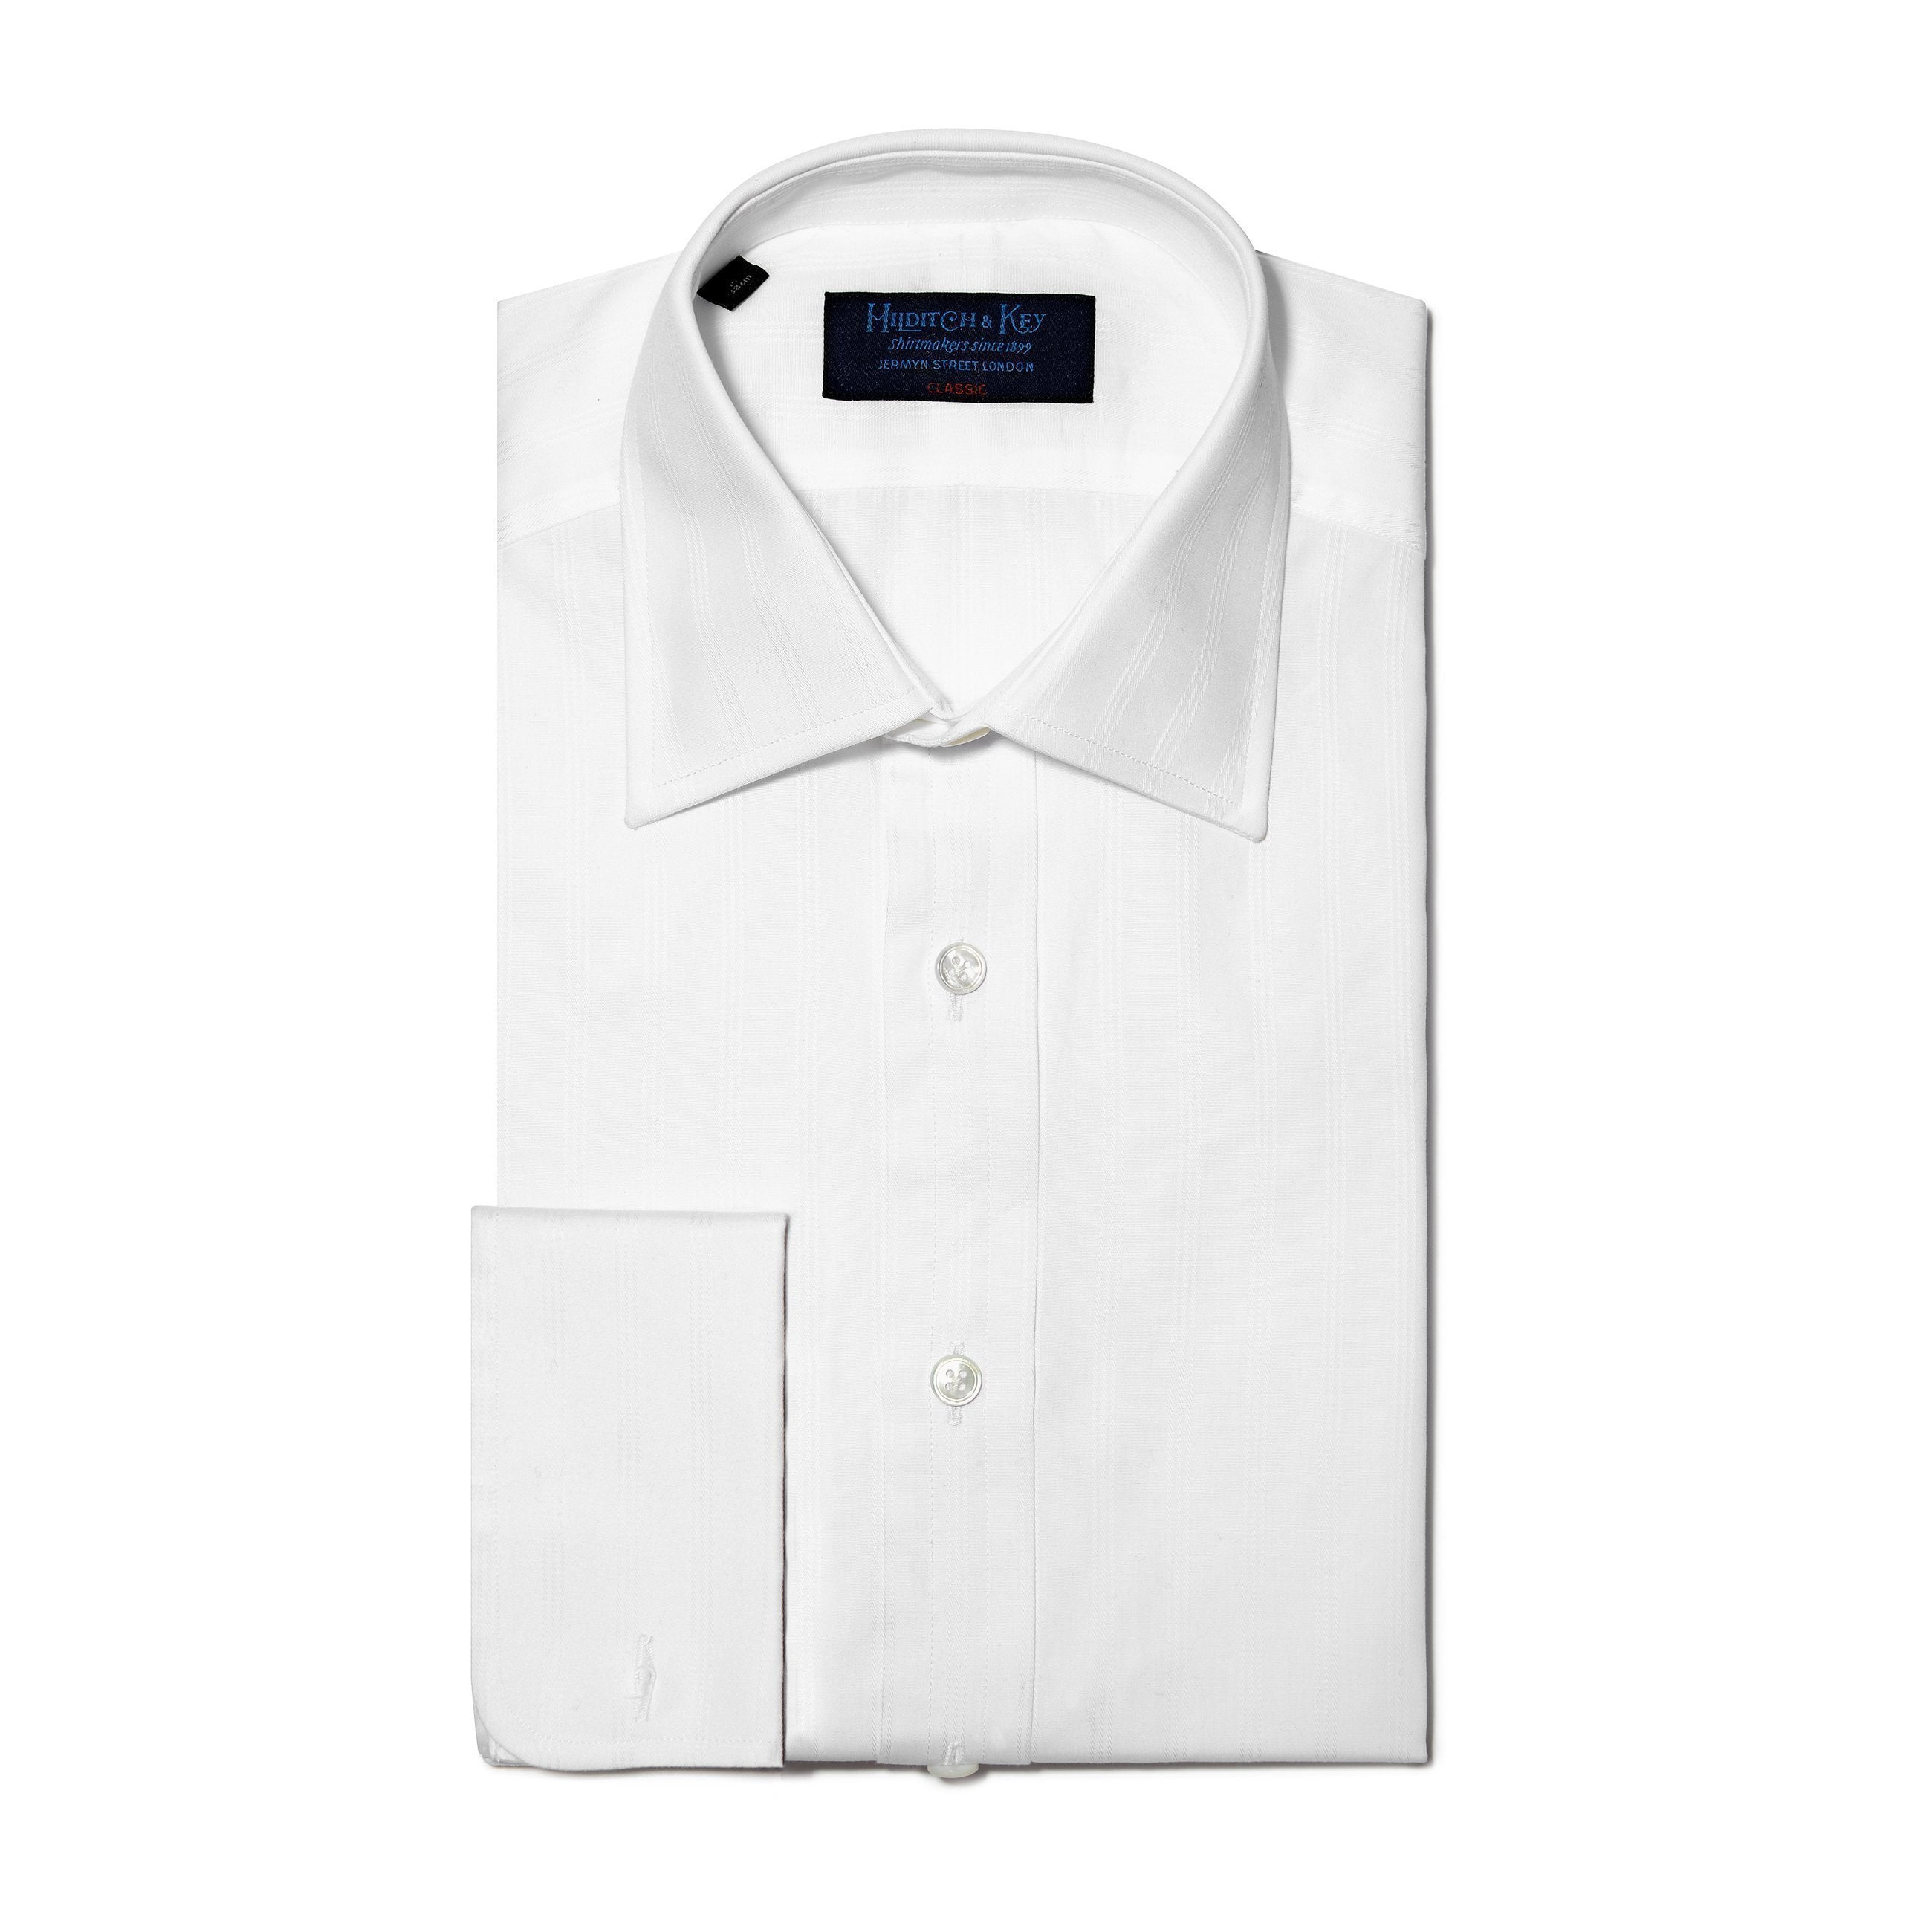 Classic Fit, Classic Collar, Double Cuff Shirt in a Multi Satin Stripe White-On-White Cotton